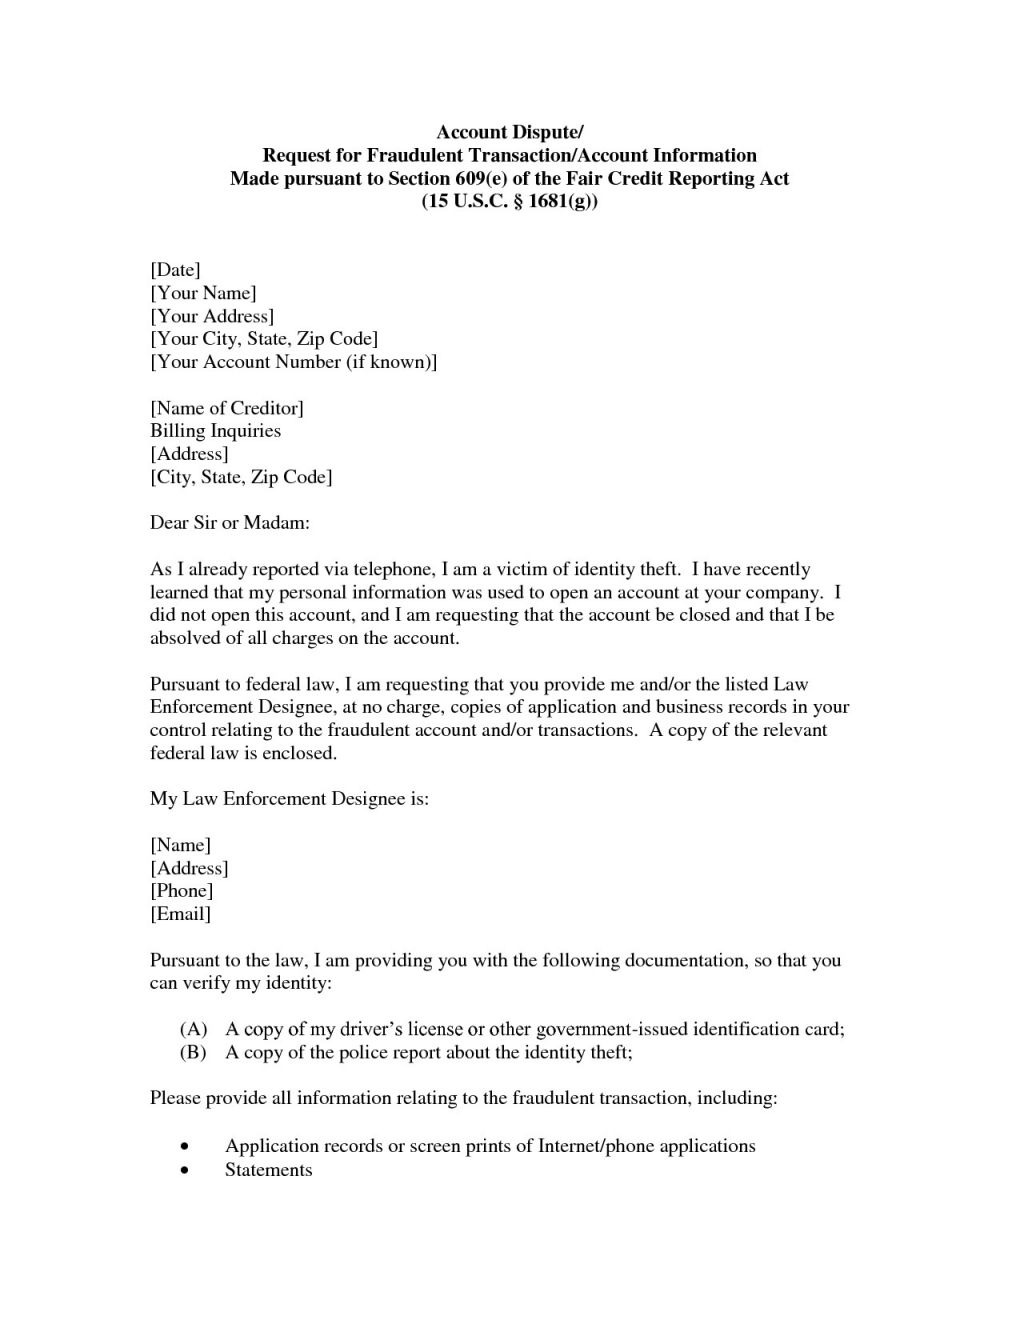 Free Section 609 Credit Dispute Letter Template - top Section 609 Credit Dispute Letter Sample Vl46 – Documentaries